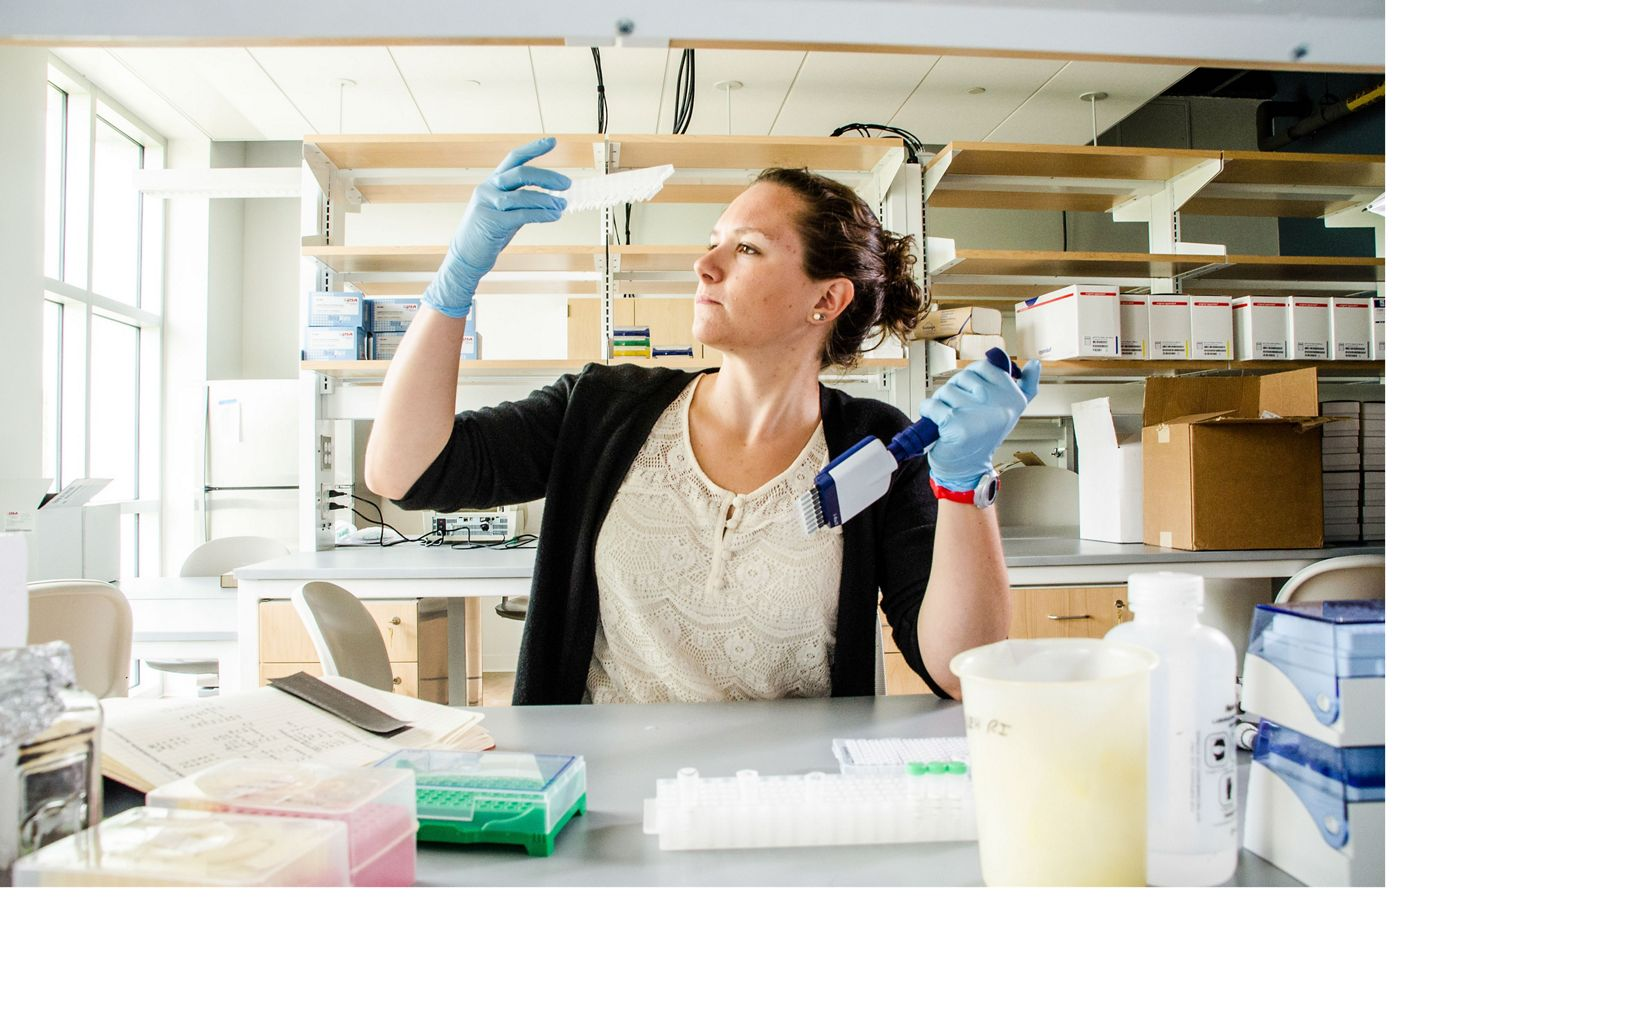 Intern sits in lab, surrounded by lab equipment, holds container up to light from nearby window